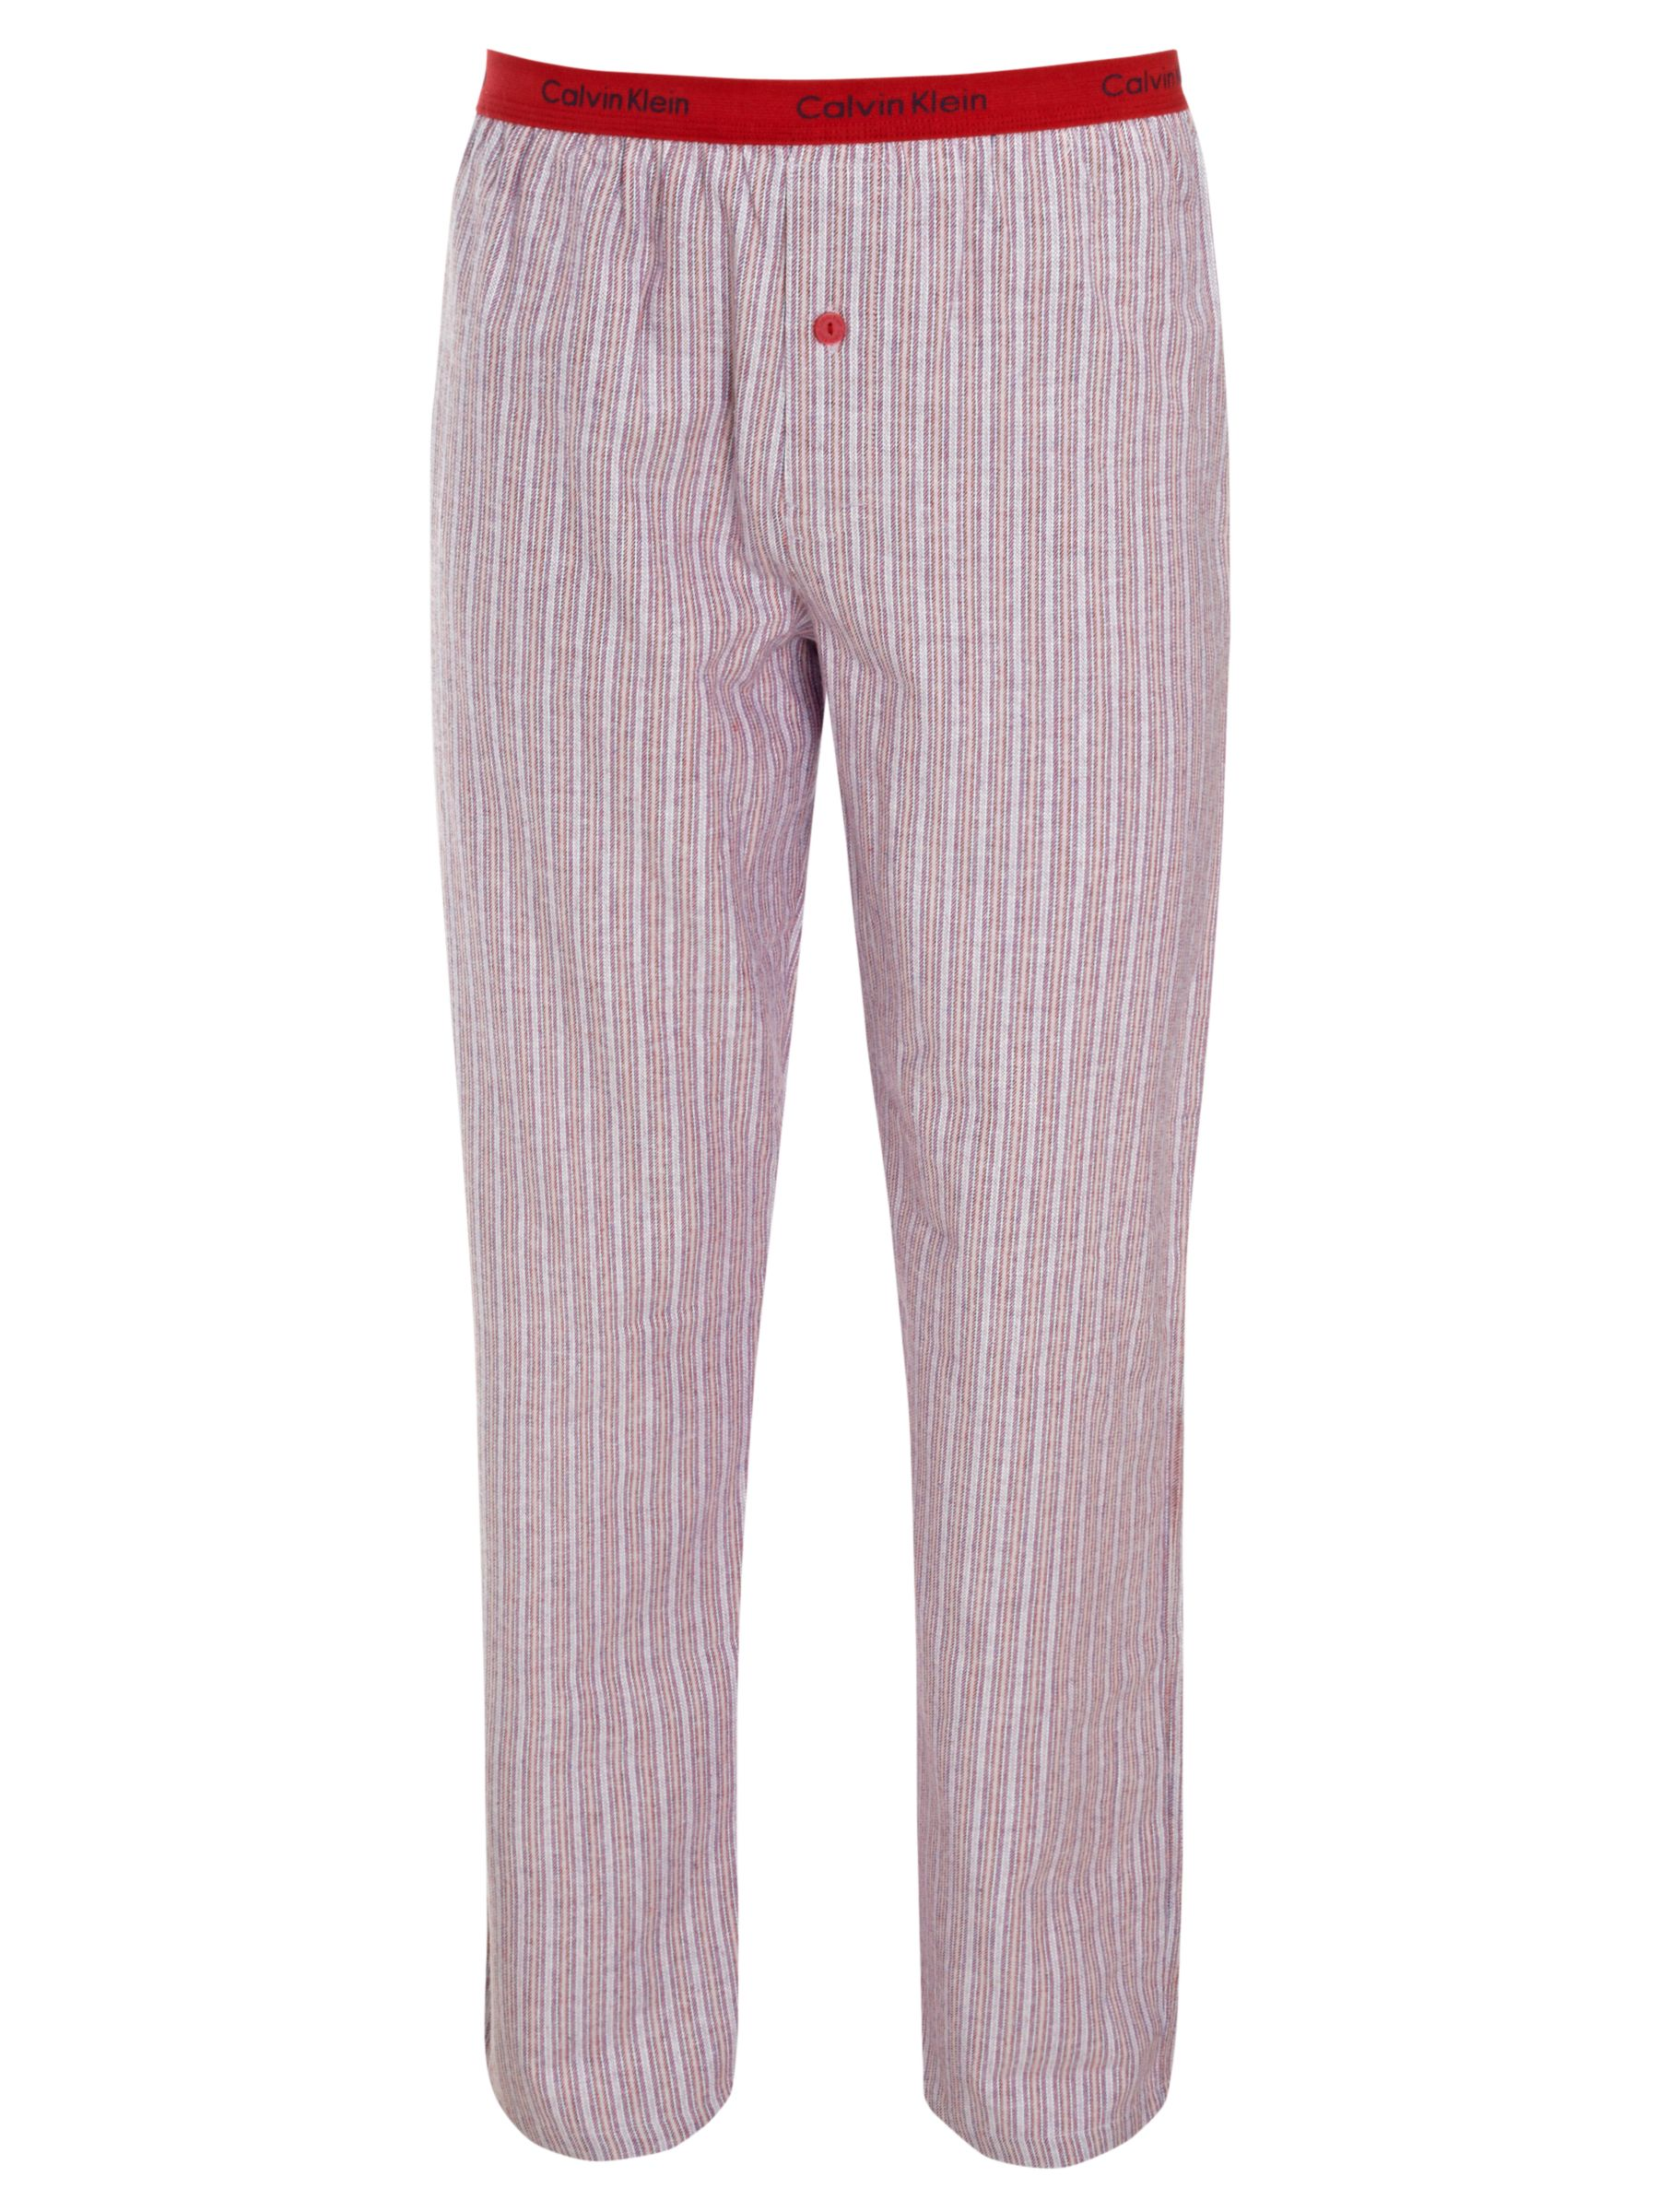 Calvin Klein Flannel Striped Pyjama Pants, Red